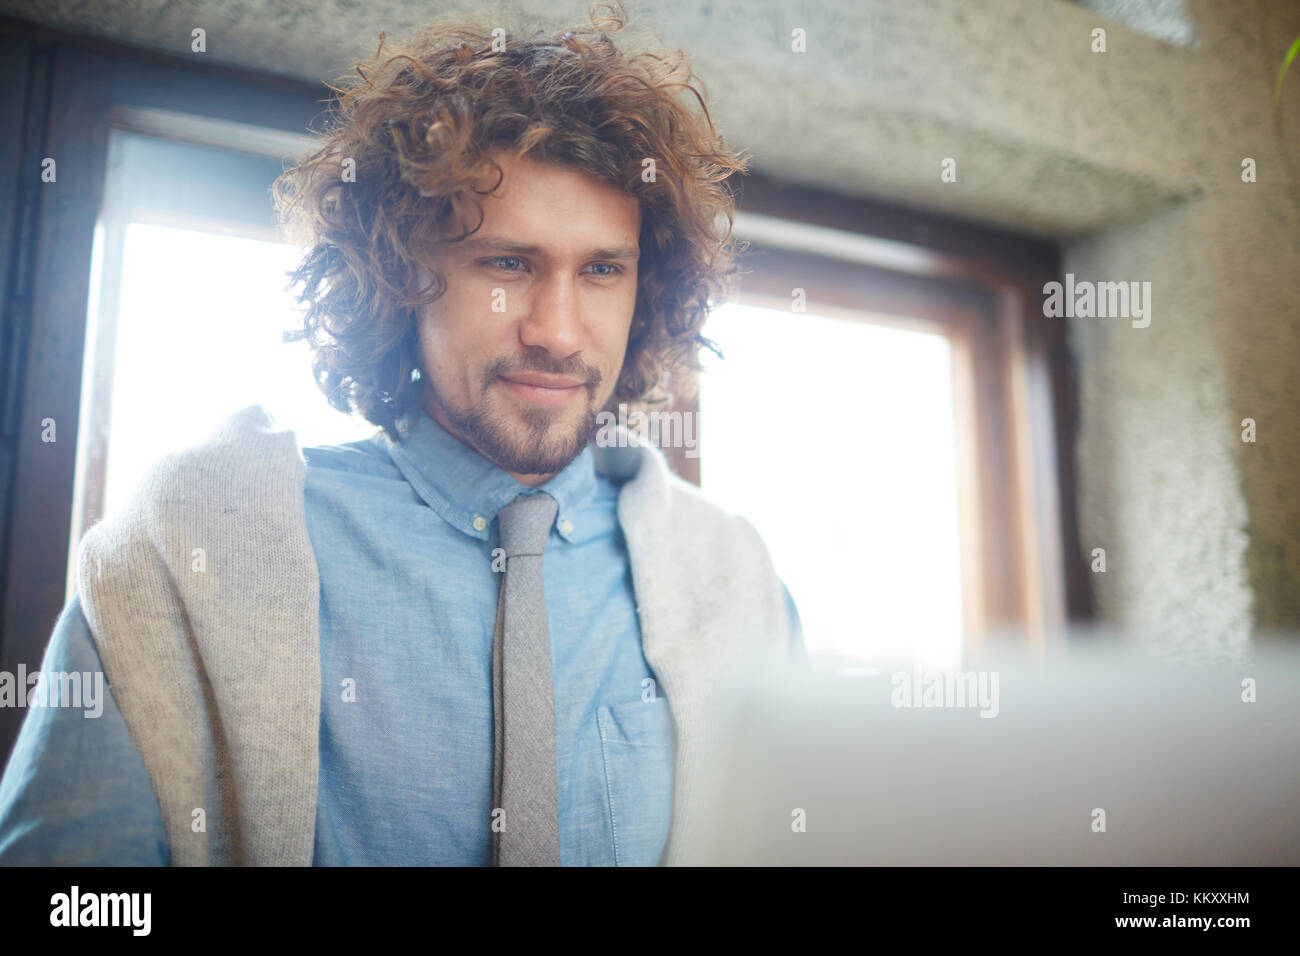 Young man in formalwear looking at laptop display during work - Stock Image